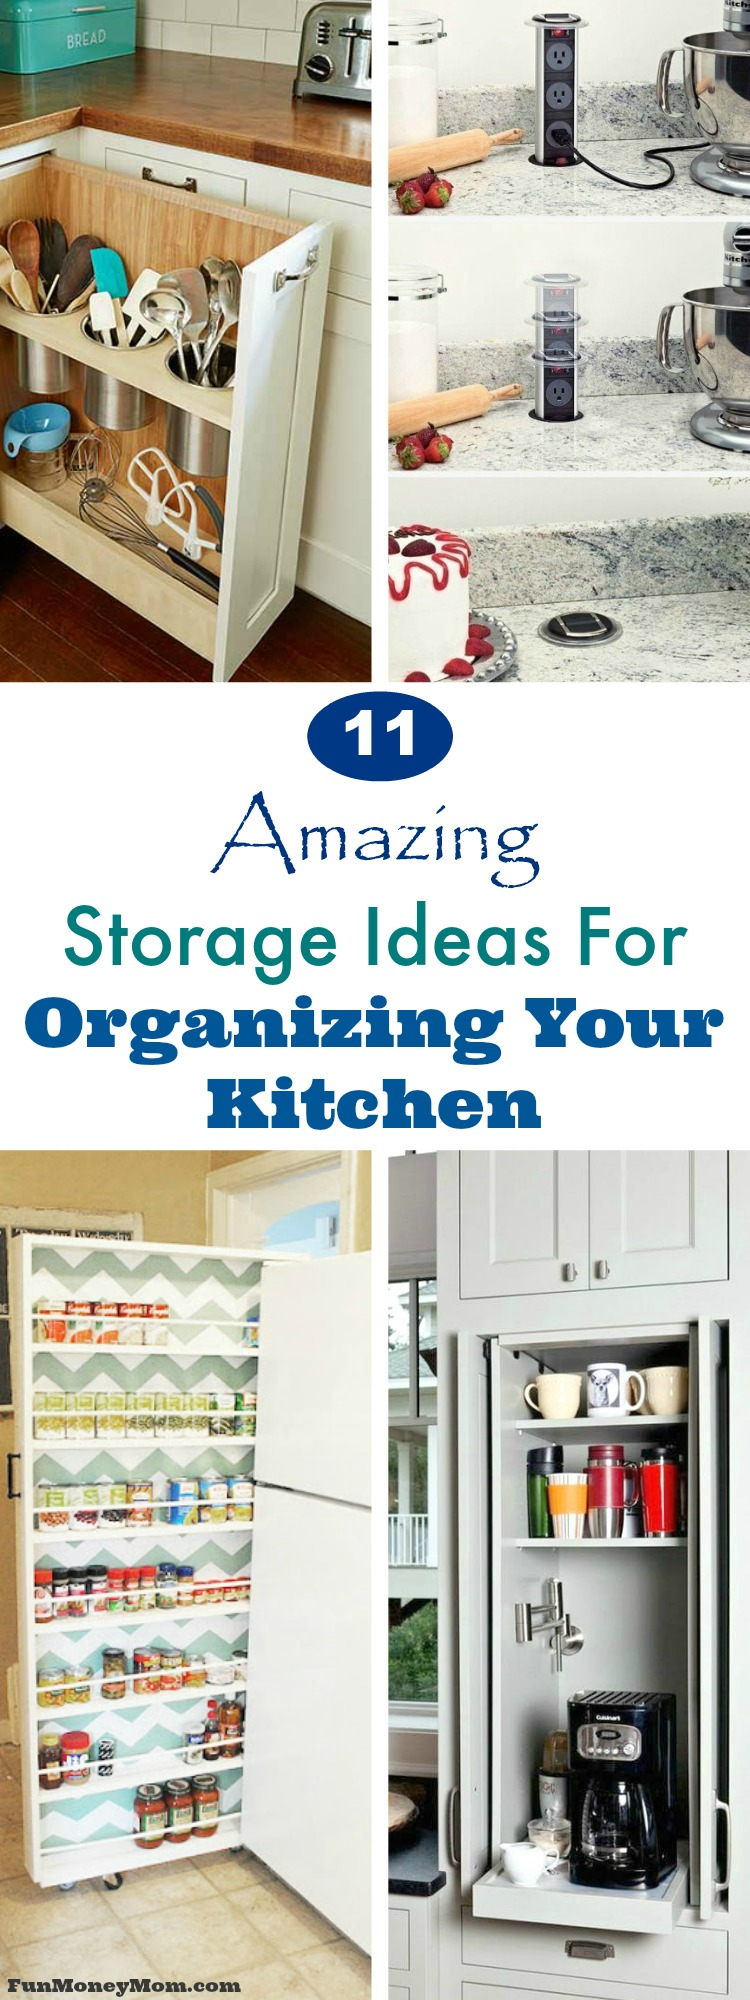 Kitchen Organization - These awesome ideas for kitchen renovations will blog your mind! From pantry organization to extra kitchen storage, you'll want to add every one! #kitchen #kitchenorganization #kitchenremovel #remodeling #renovation #kitchenremodel